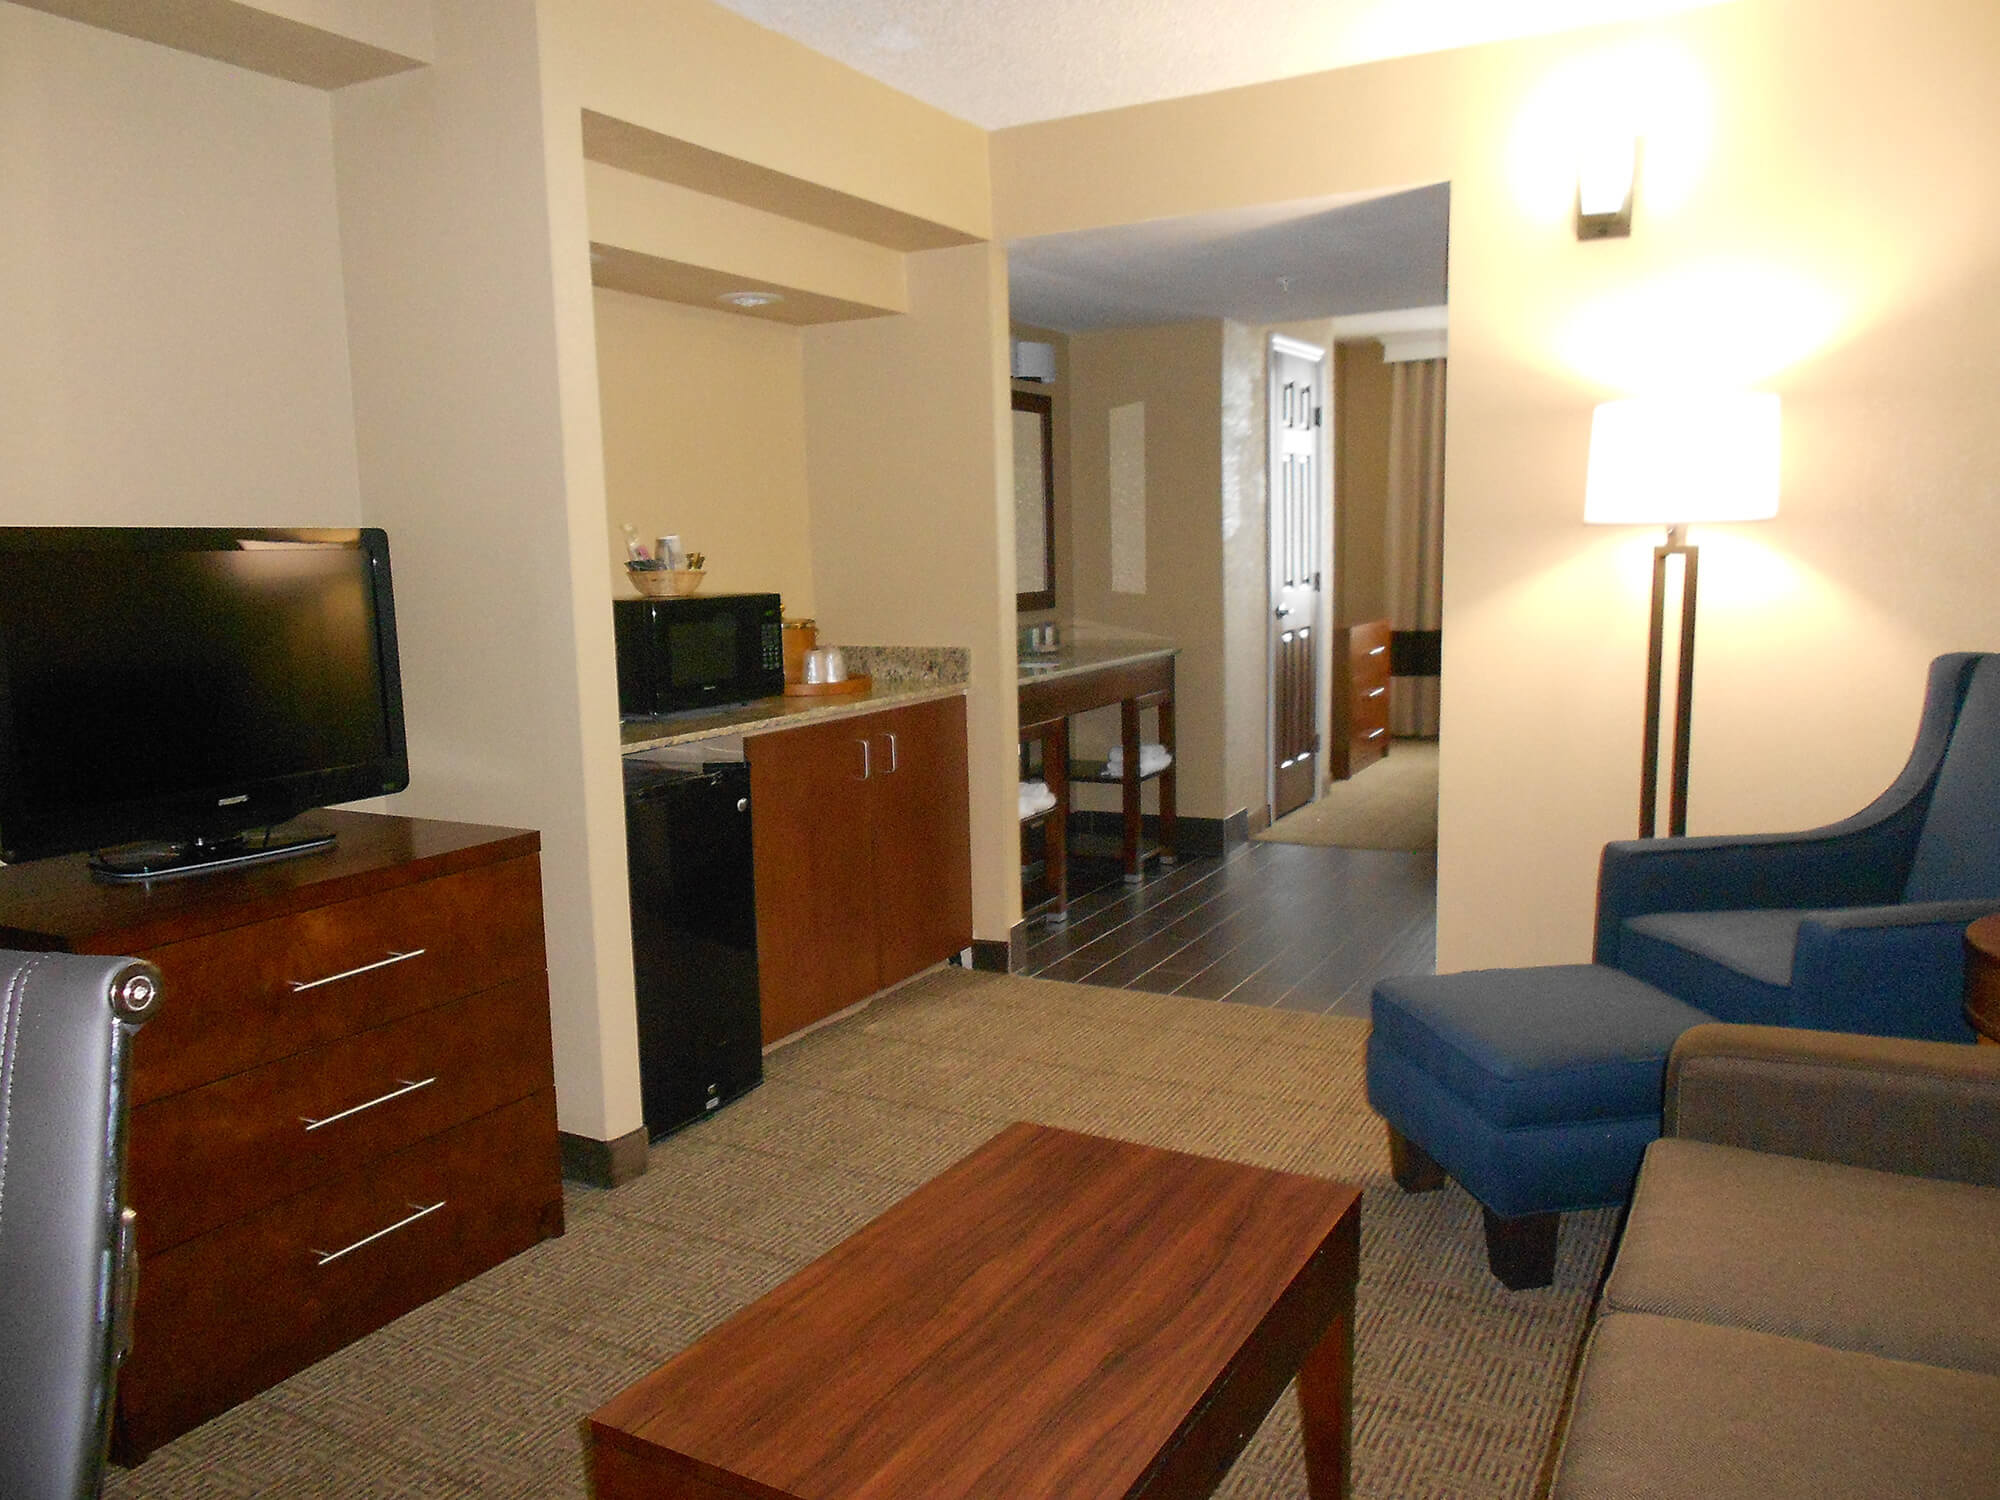 Sitting and kitchen areas of suite at Comfort Inn & Suites Lakeland North I4